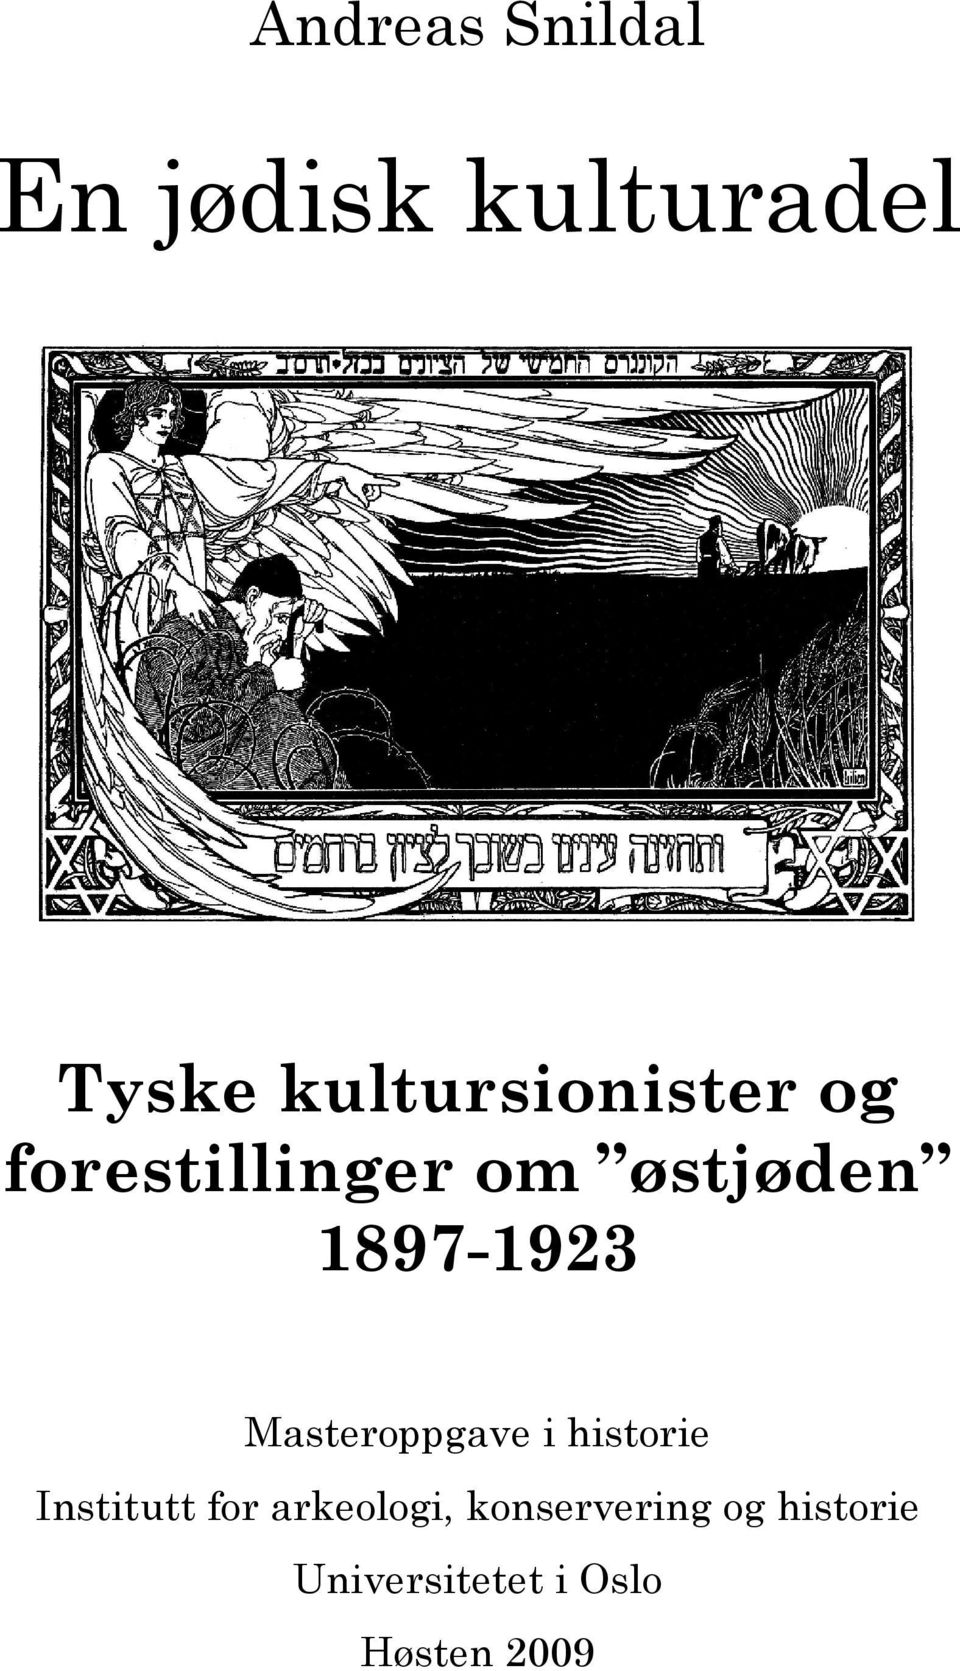 1897-1923 Masteroppgave i historie Institutt for